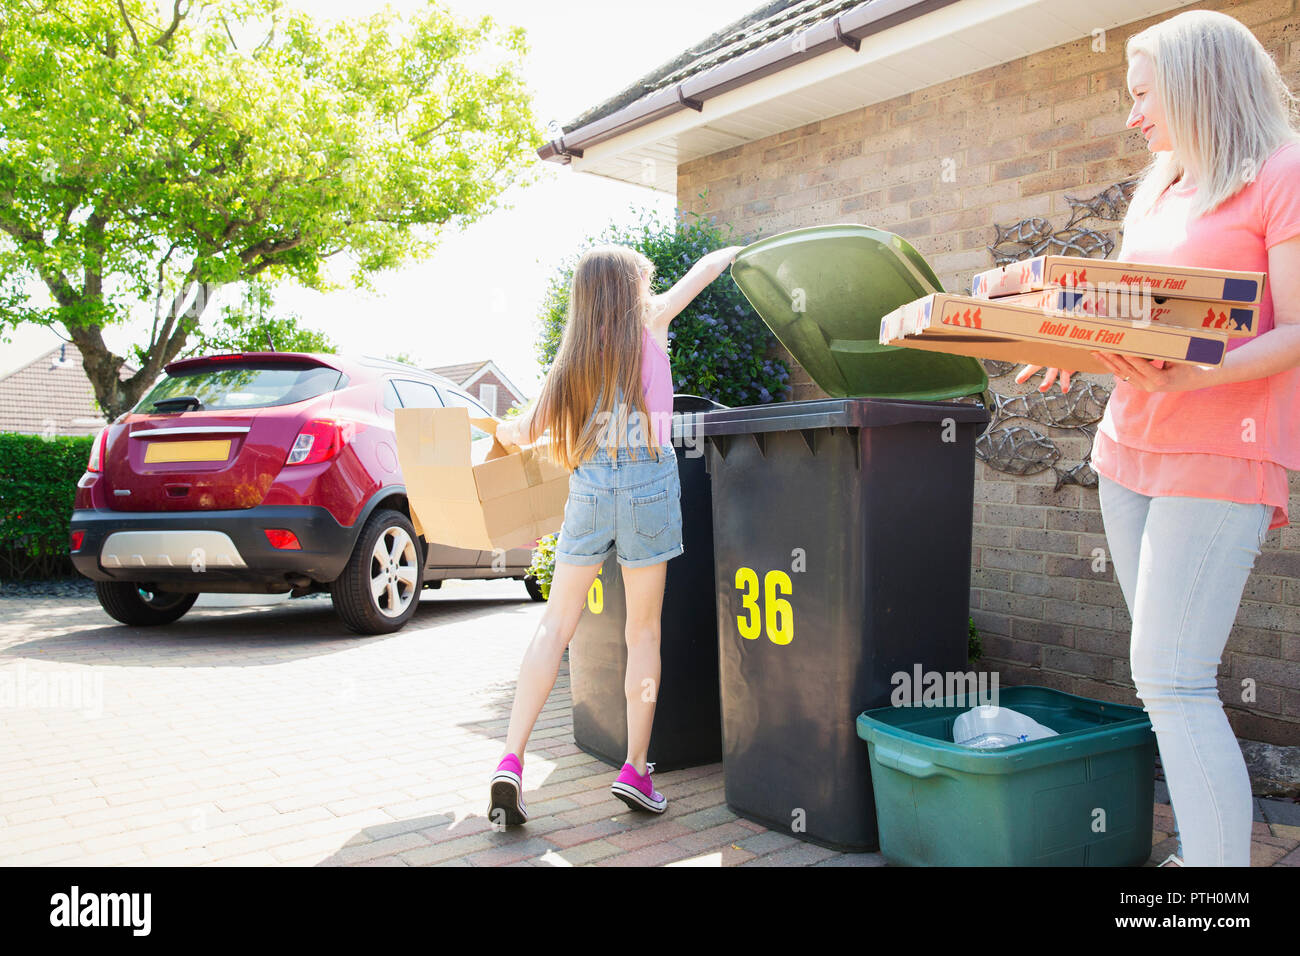 Mother and daughter recycling cardboard in driveway - Stock Image